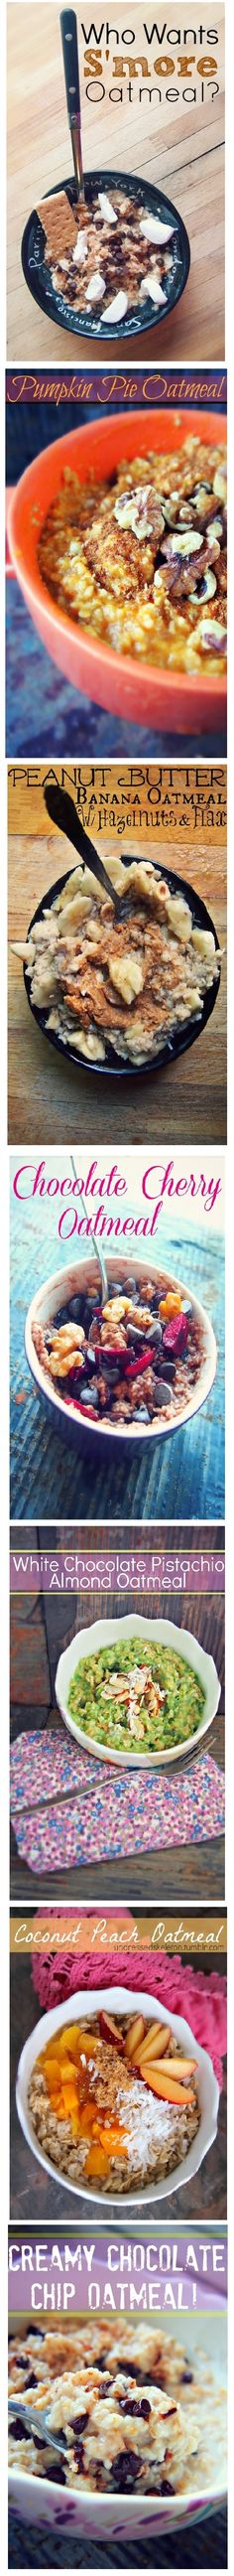 Healthy and Yummy Oatmeal Recipes!